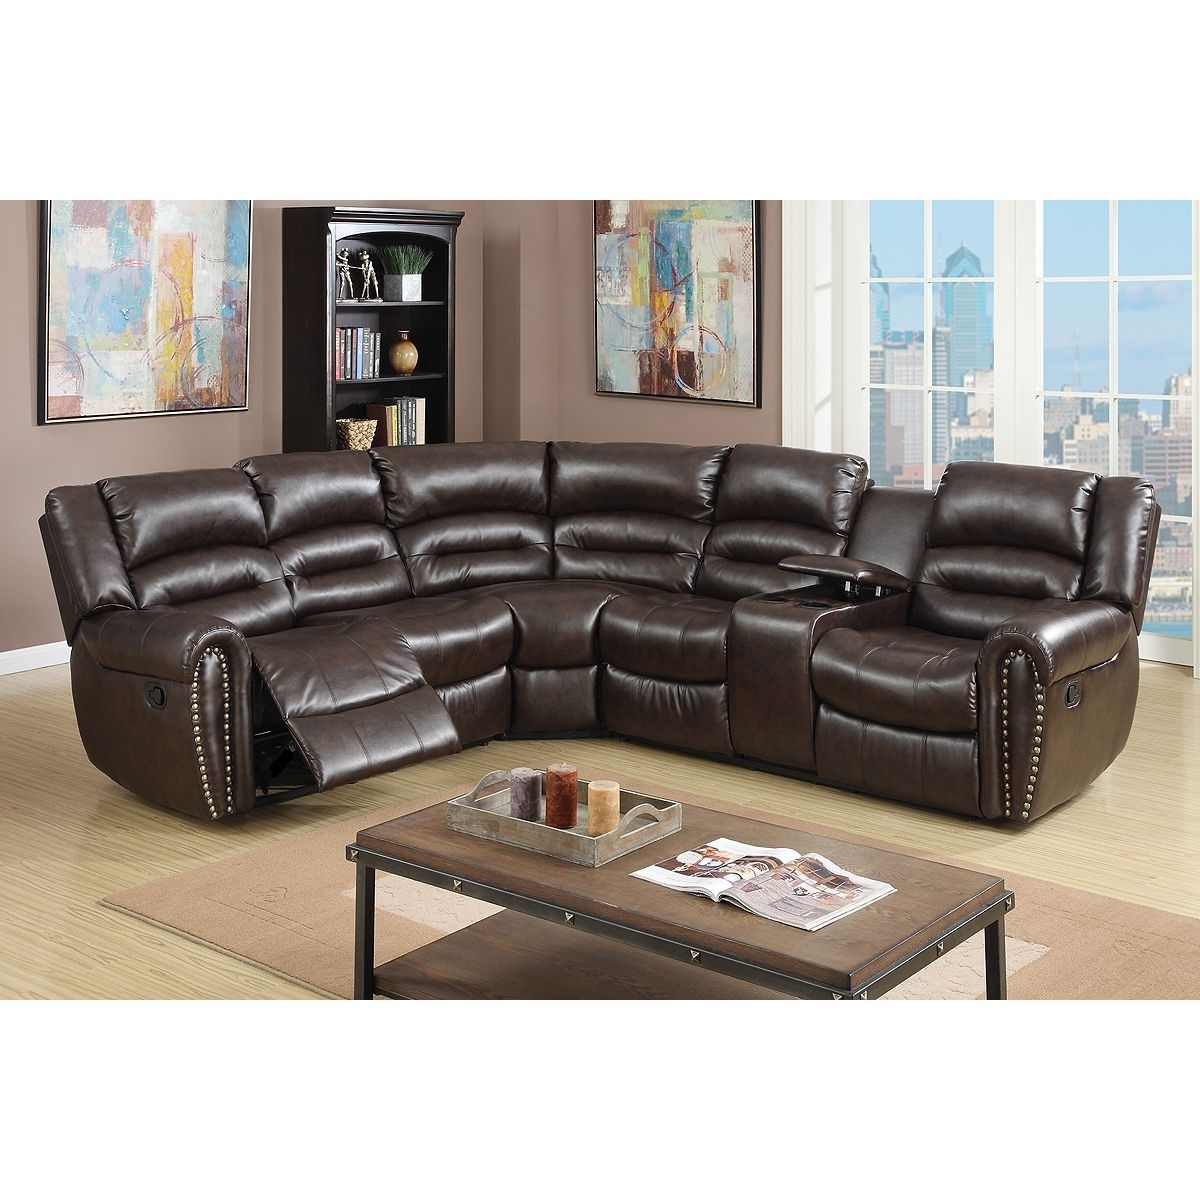 American Eagle Furniture Ek Lb309 Dc Dark Chocolate Sofa C Throughout Tenny Dark Grey 2 Piece Right Facing Chaise Sectionals With 2 Headrest (View 23 of 25)